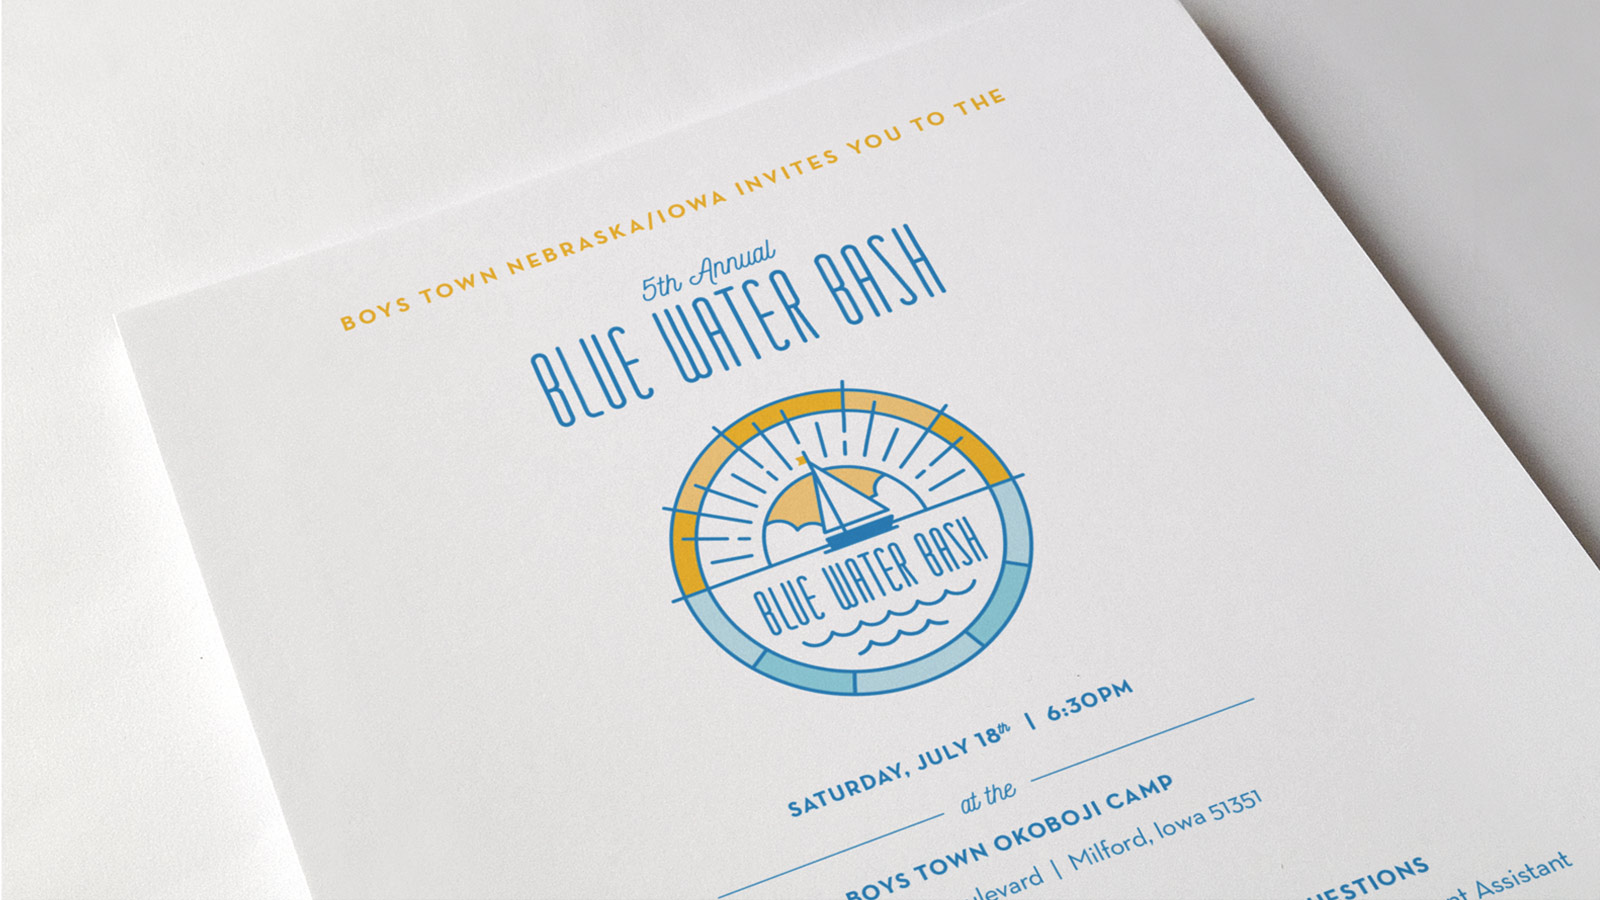 Boys Town Blue Water Bash Invitation